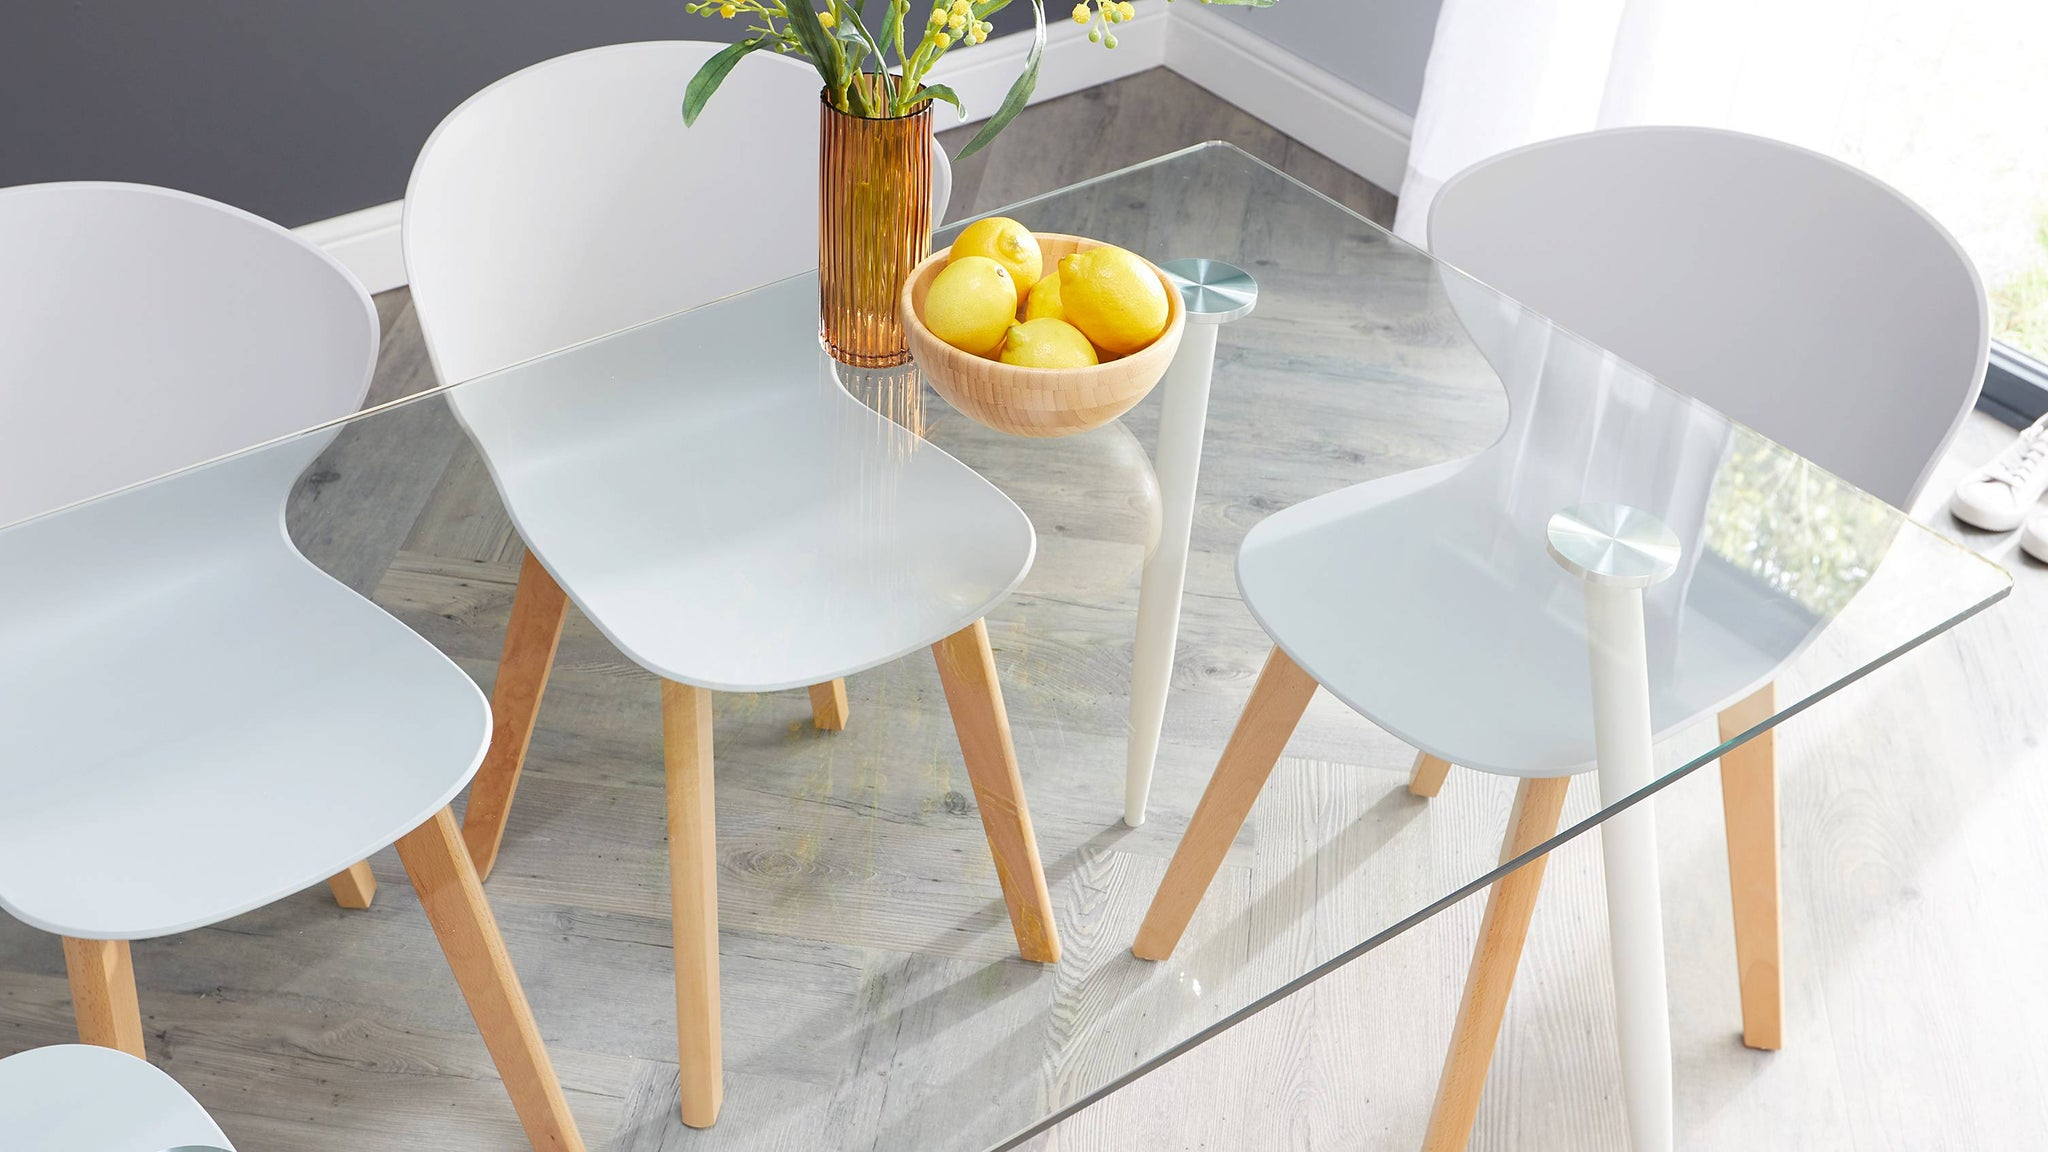 Buy 6 seater glass table with wooden chairs